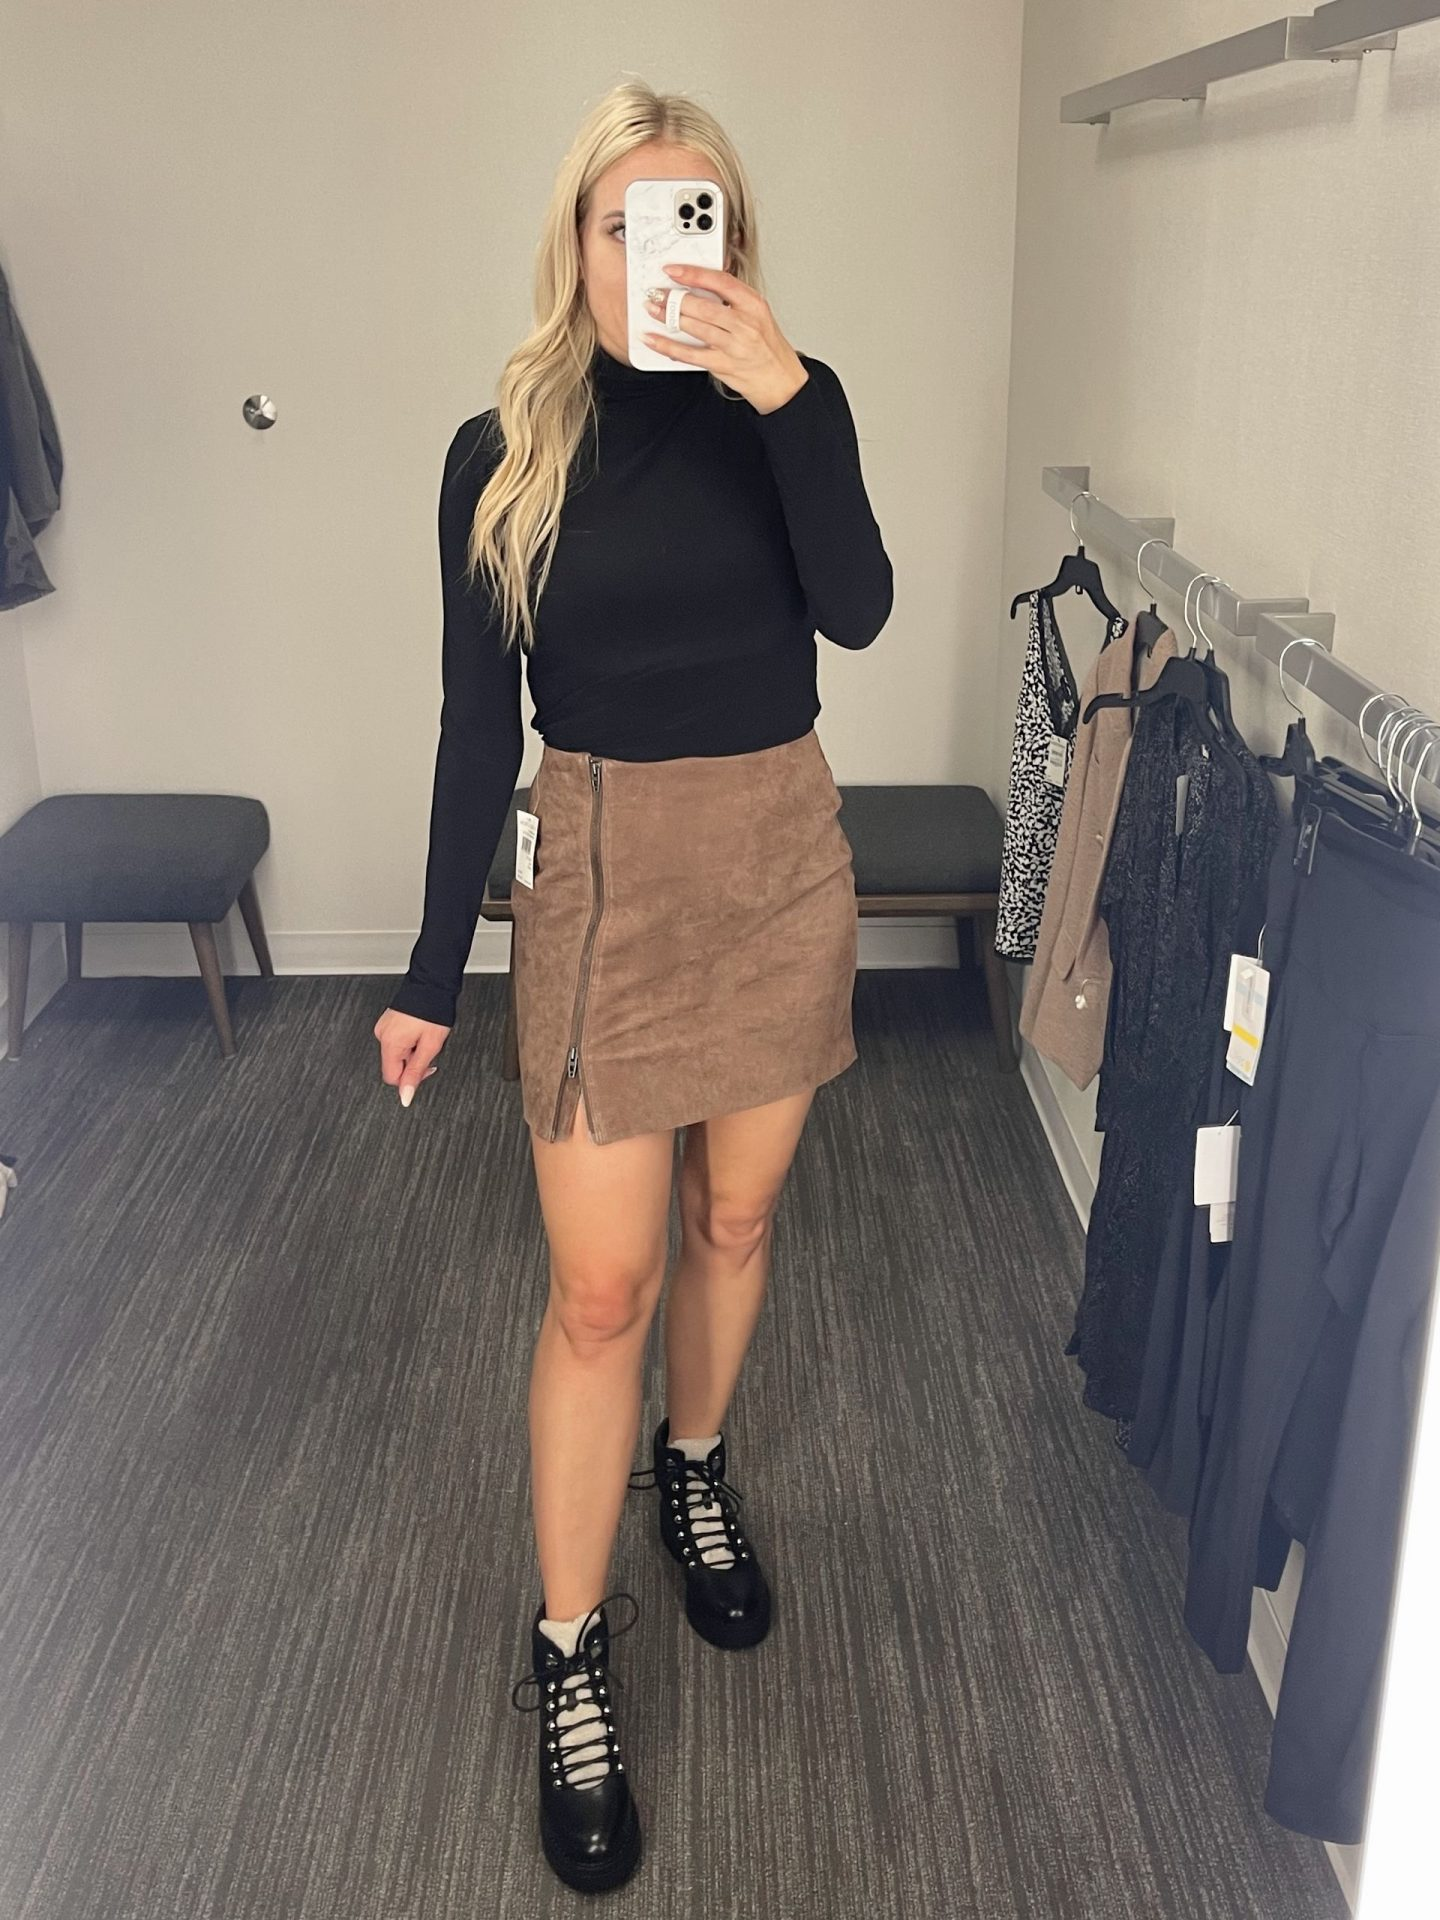 fashion blogger Lee taylor of legalleeblonde Fitting Room Review - Nordstrom Anniversary Sale